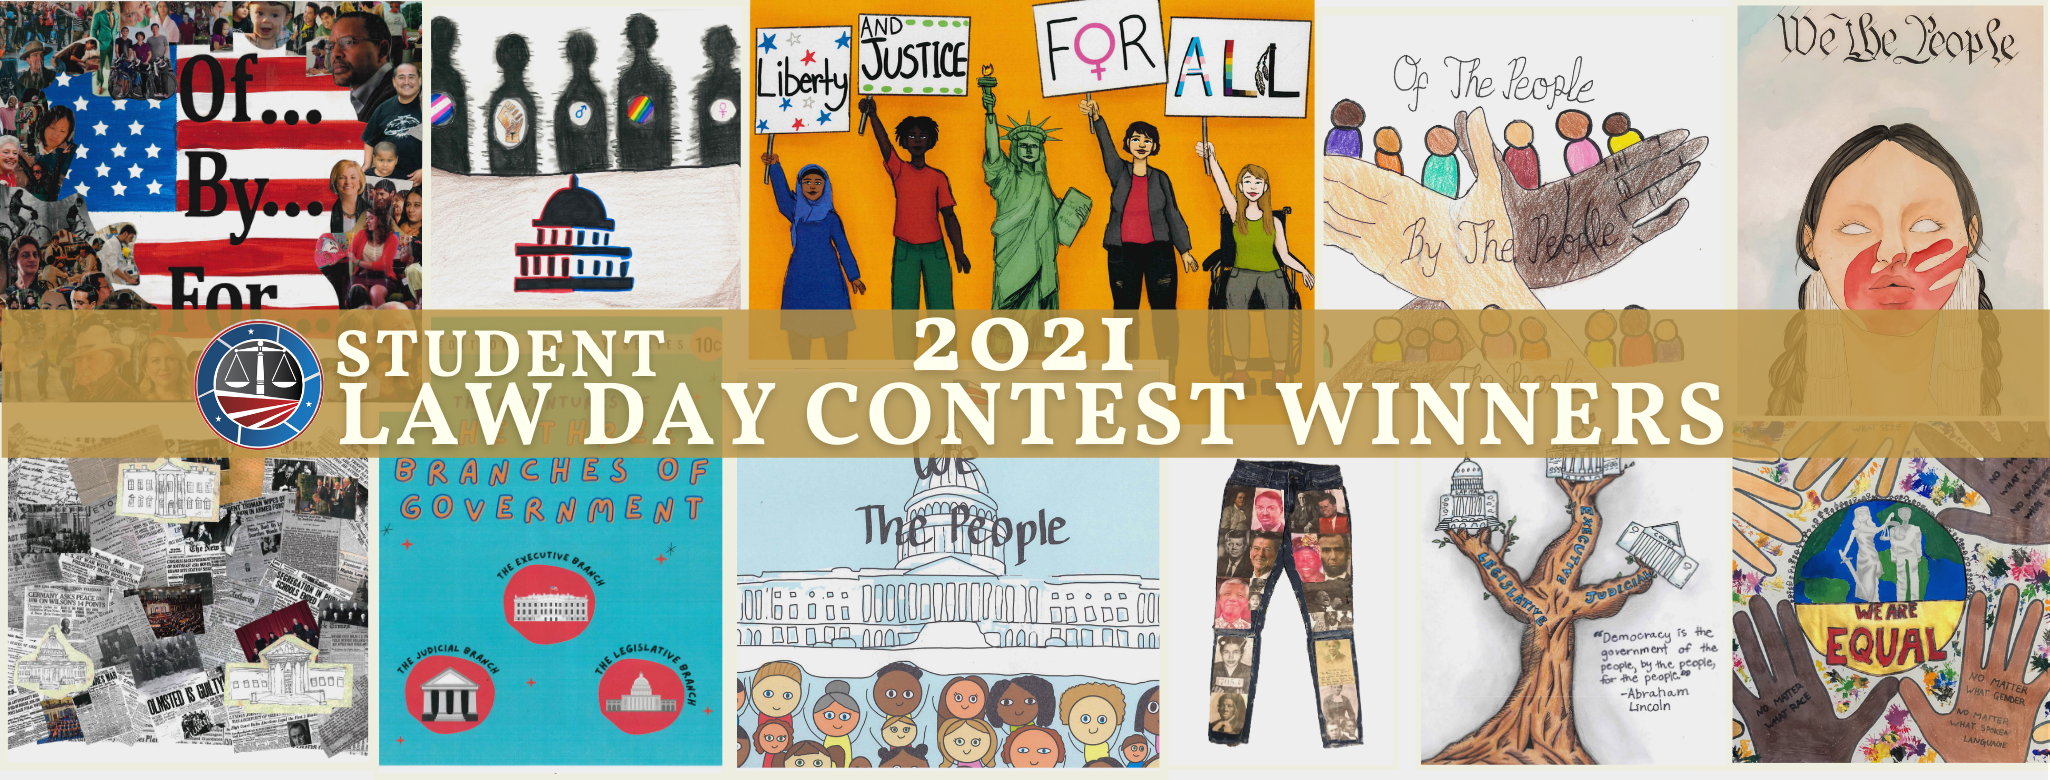 FRONT PAGE BANNER –2021 Student Law Day Contest